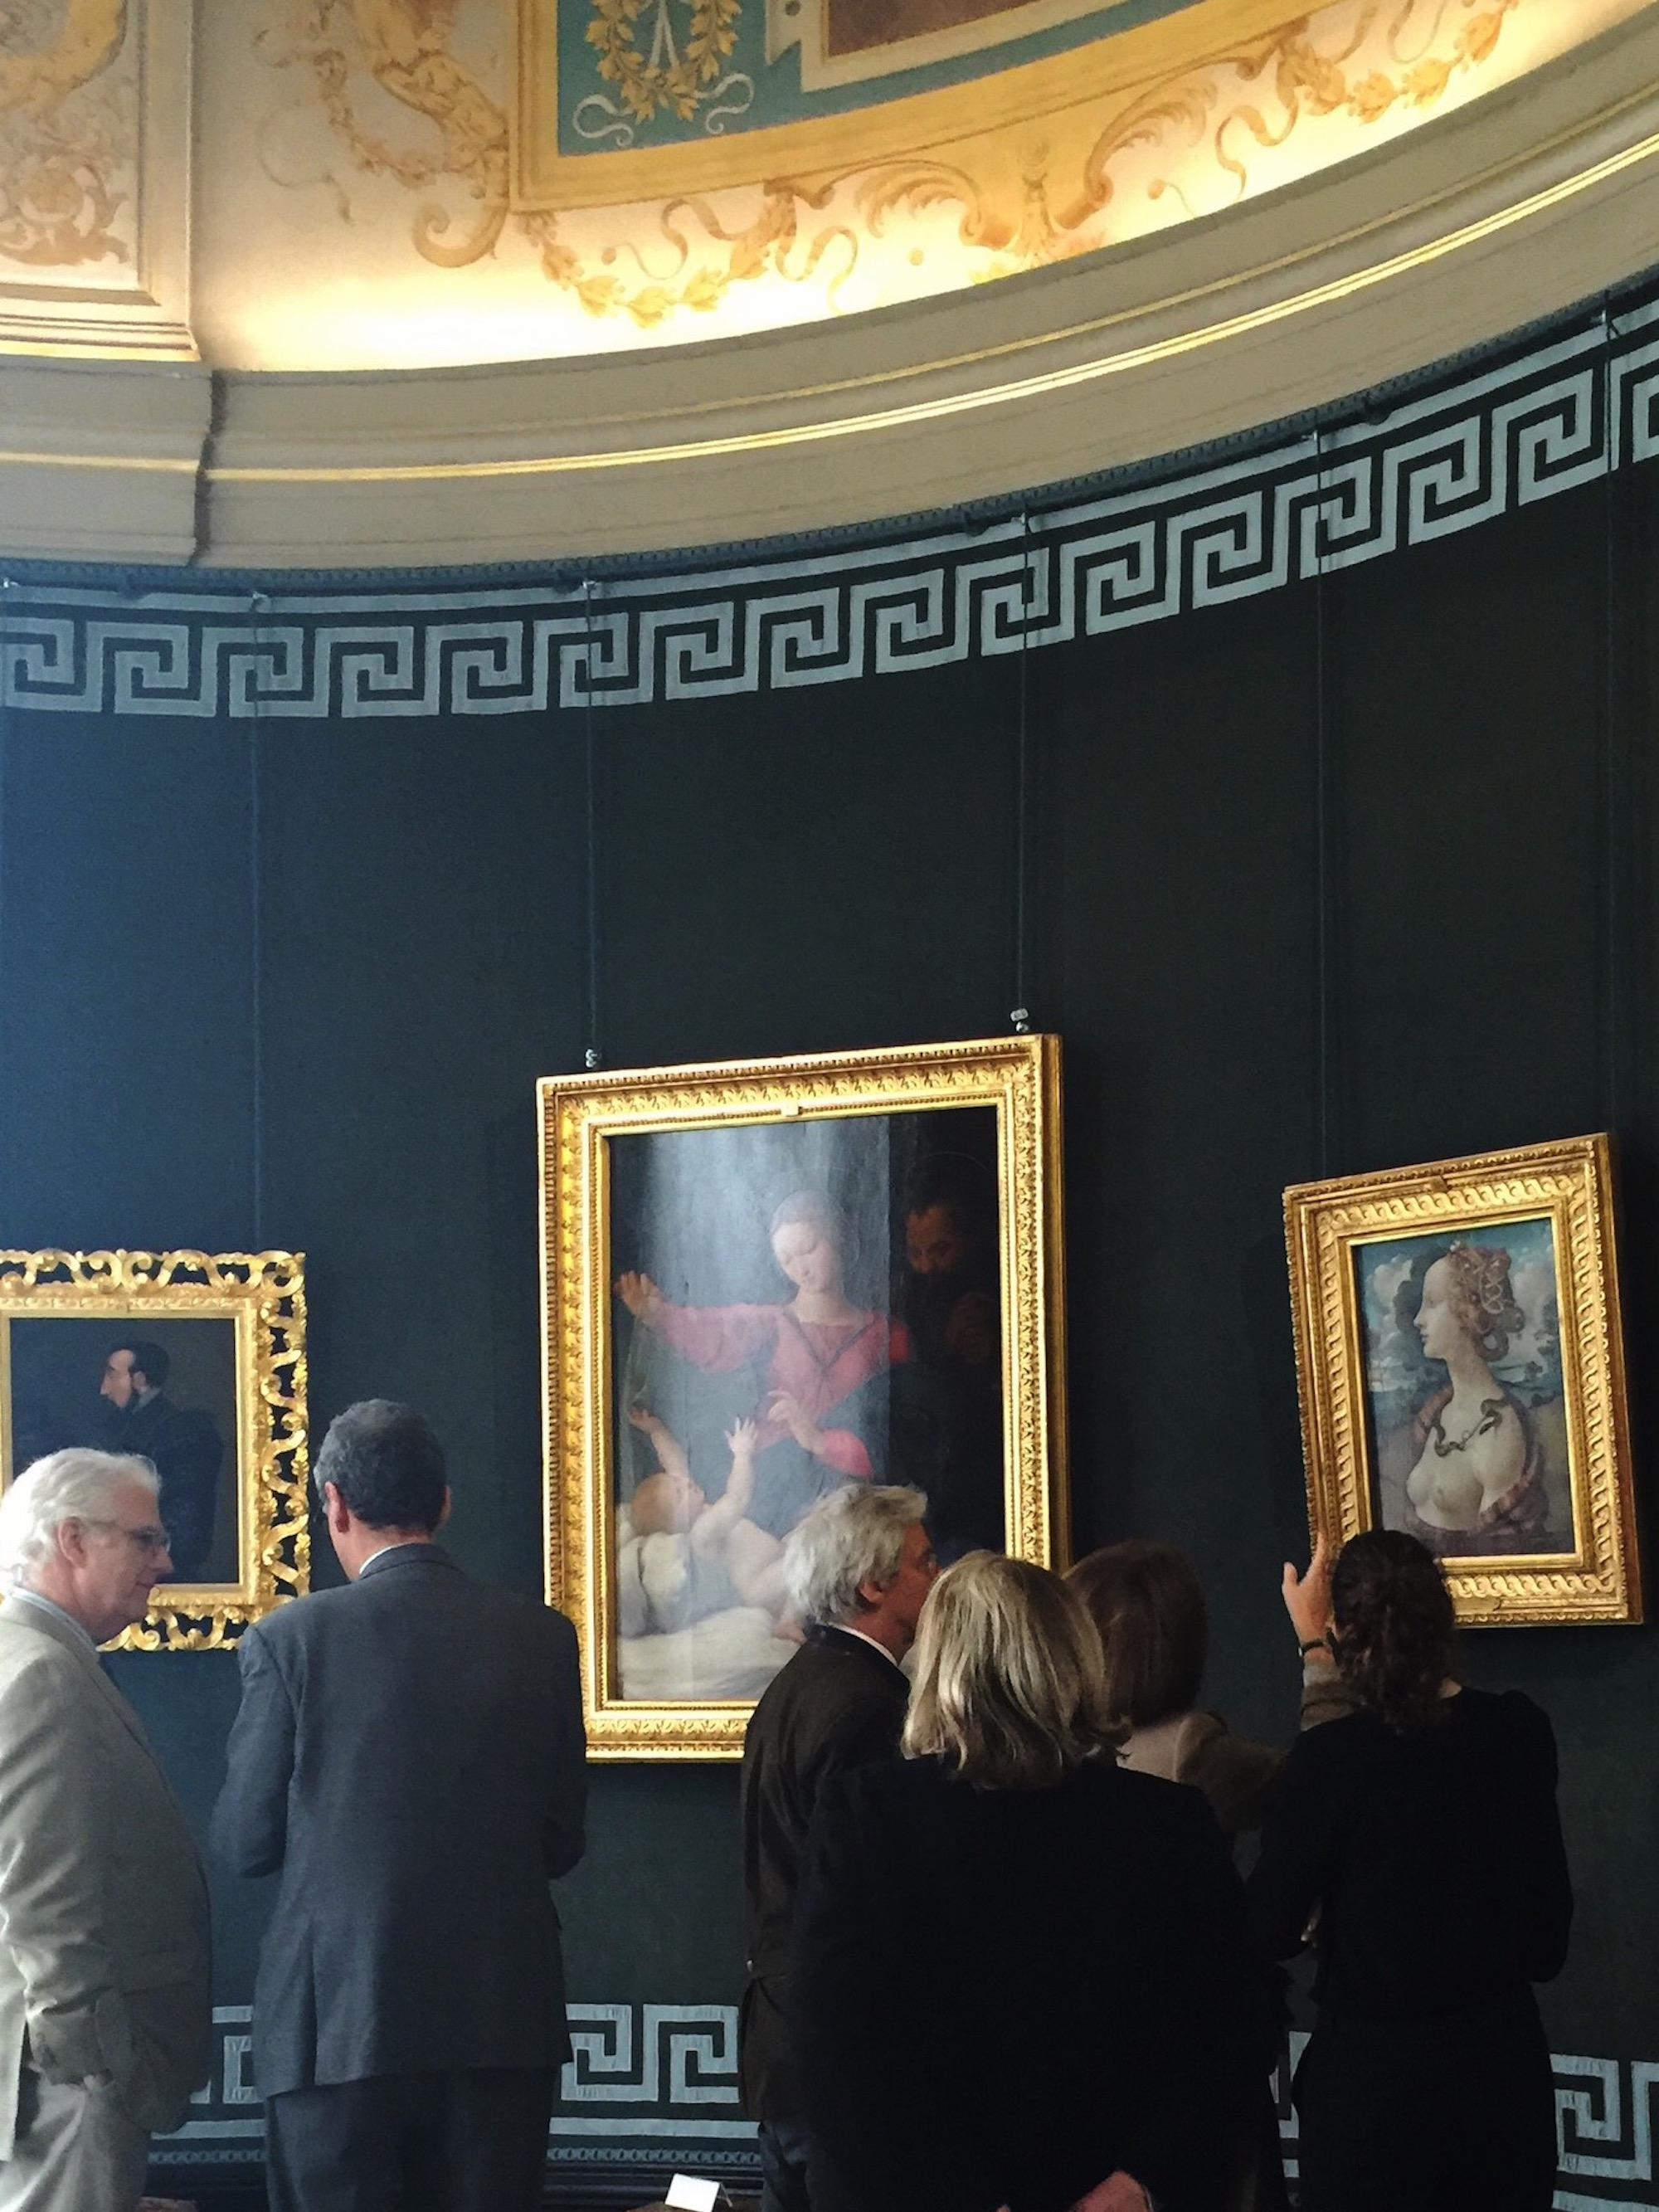 Alexander Johnson, Henri Loyrette, Olivier Bourgois, Maryvonne Pinault, Alice Goldet, and Astrid Grange in the Rotunda admiring Italian Renaissance pictures